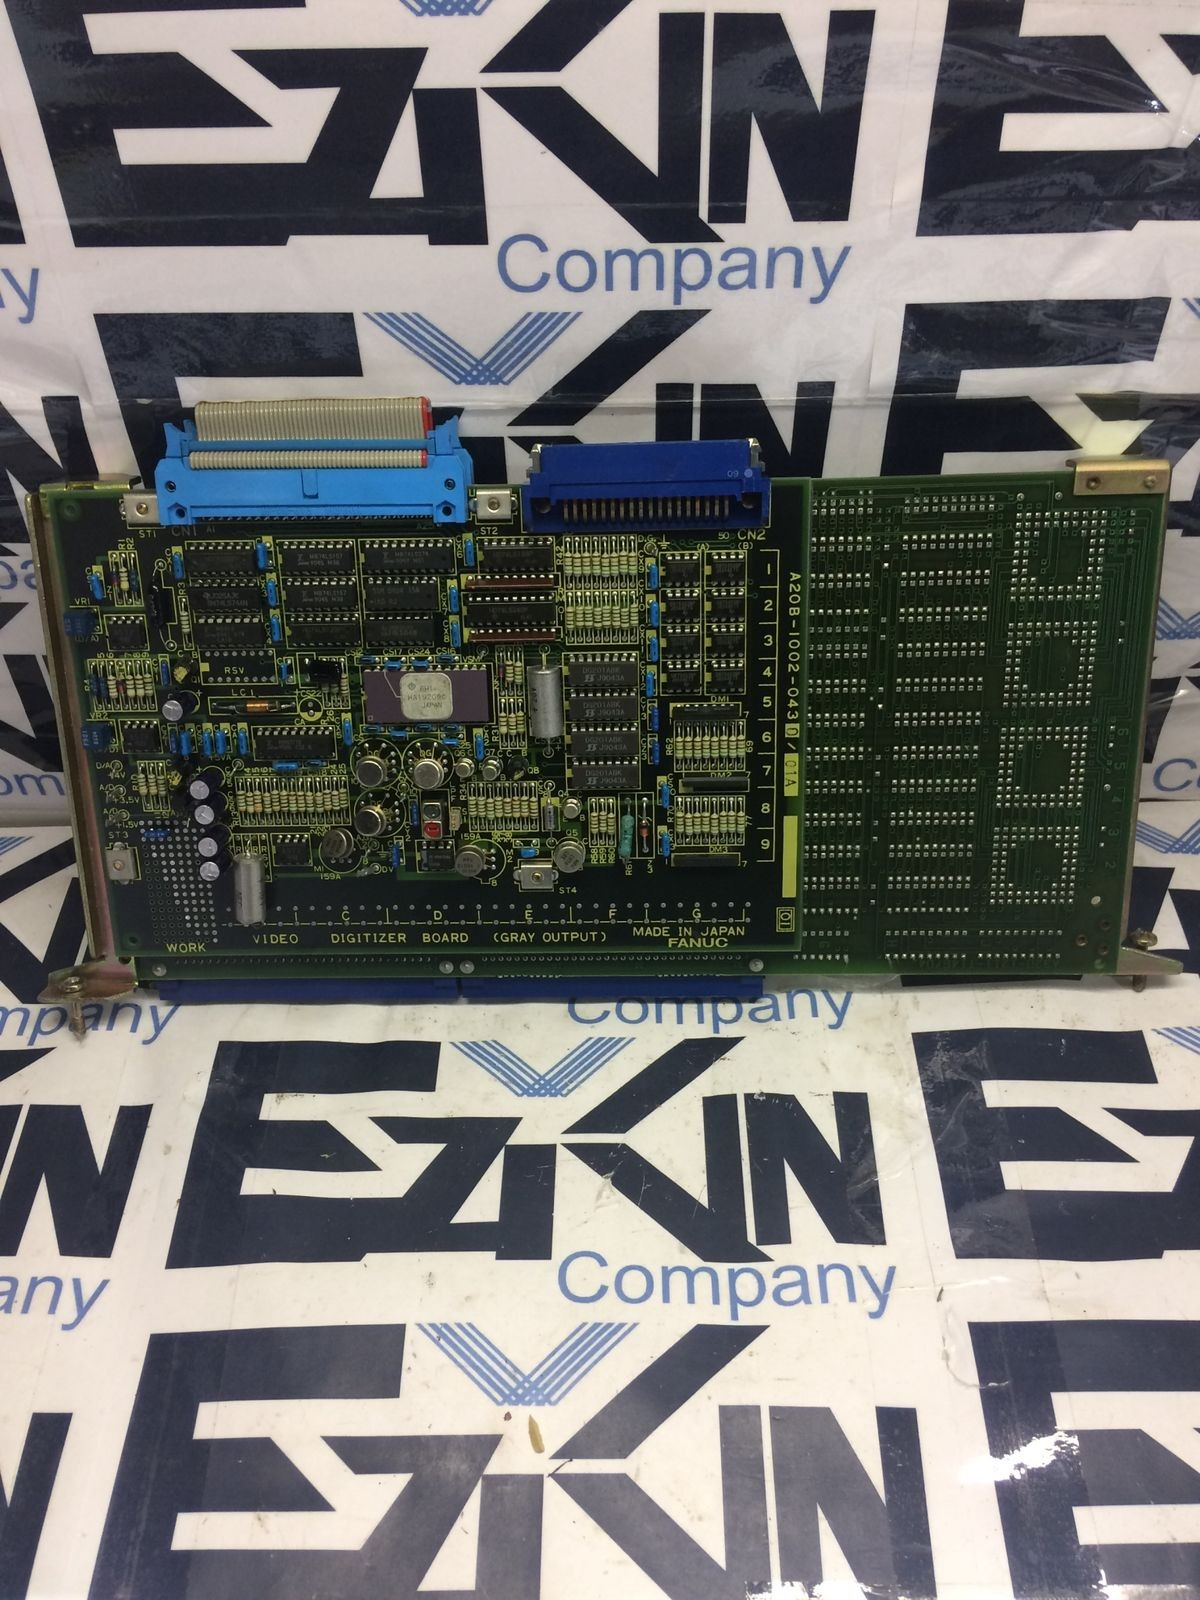 FANUC A16B-1211-0140/05C PC BOARD VISION ENGINE W/ A20B-1002-0430/01A BOARD  16X10X6